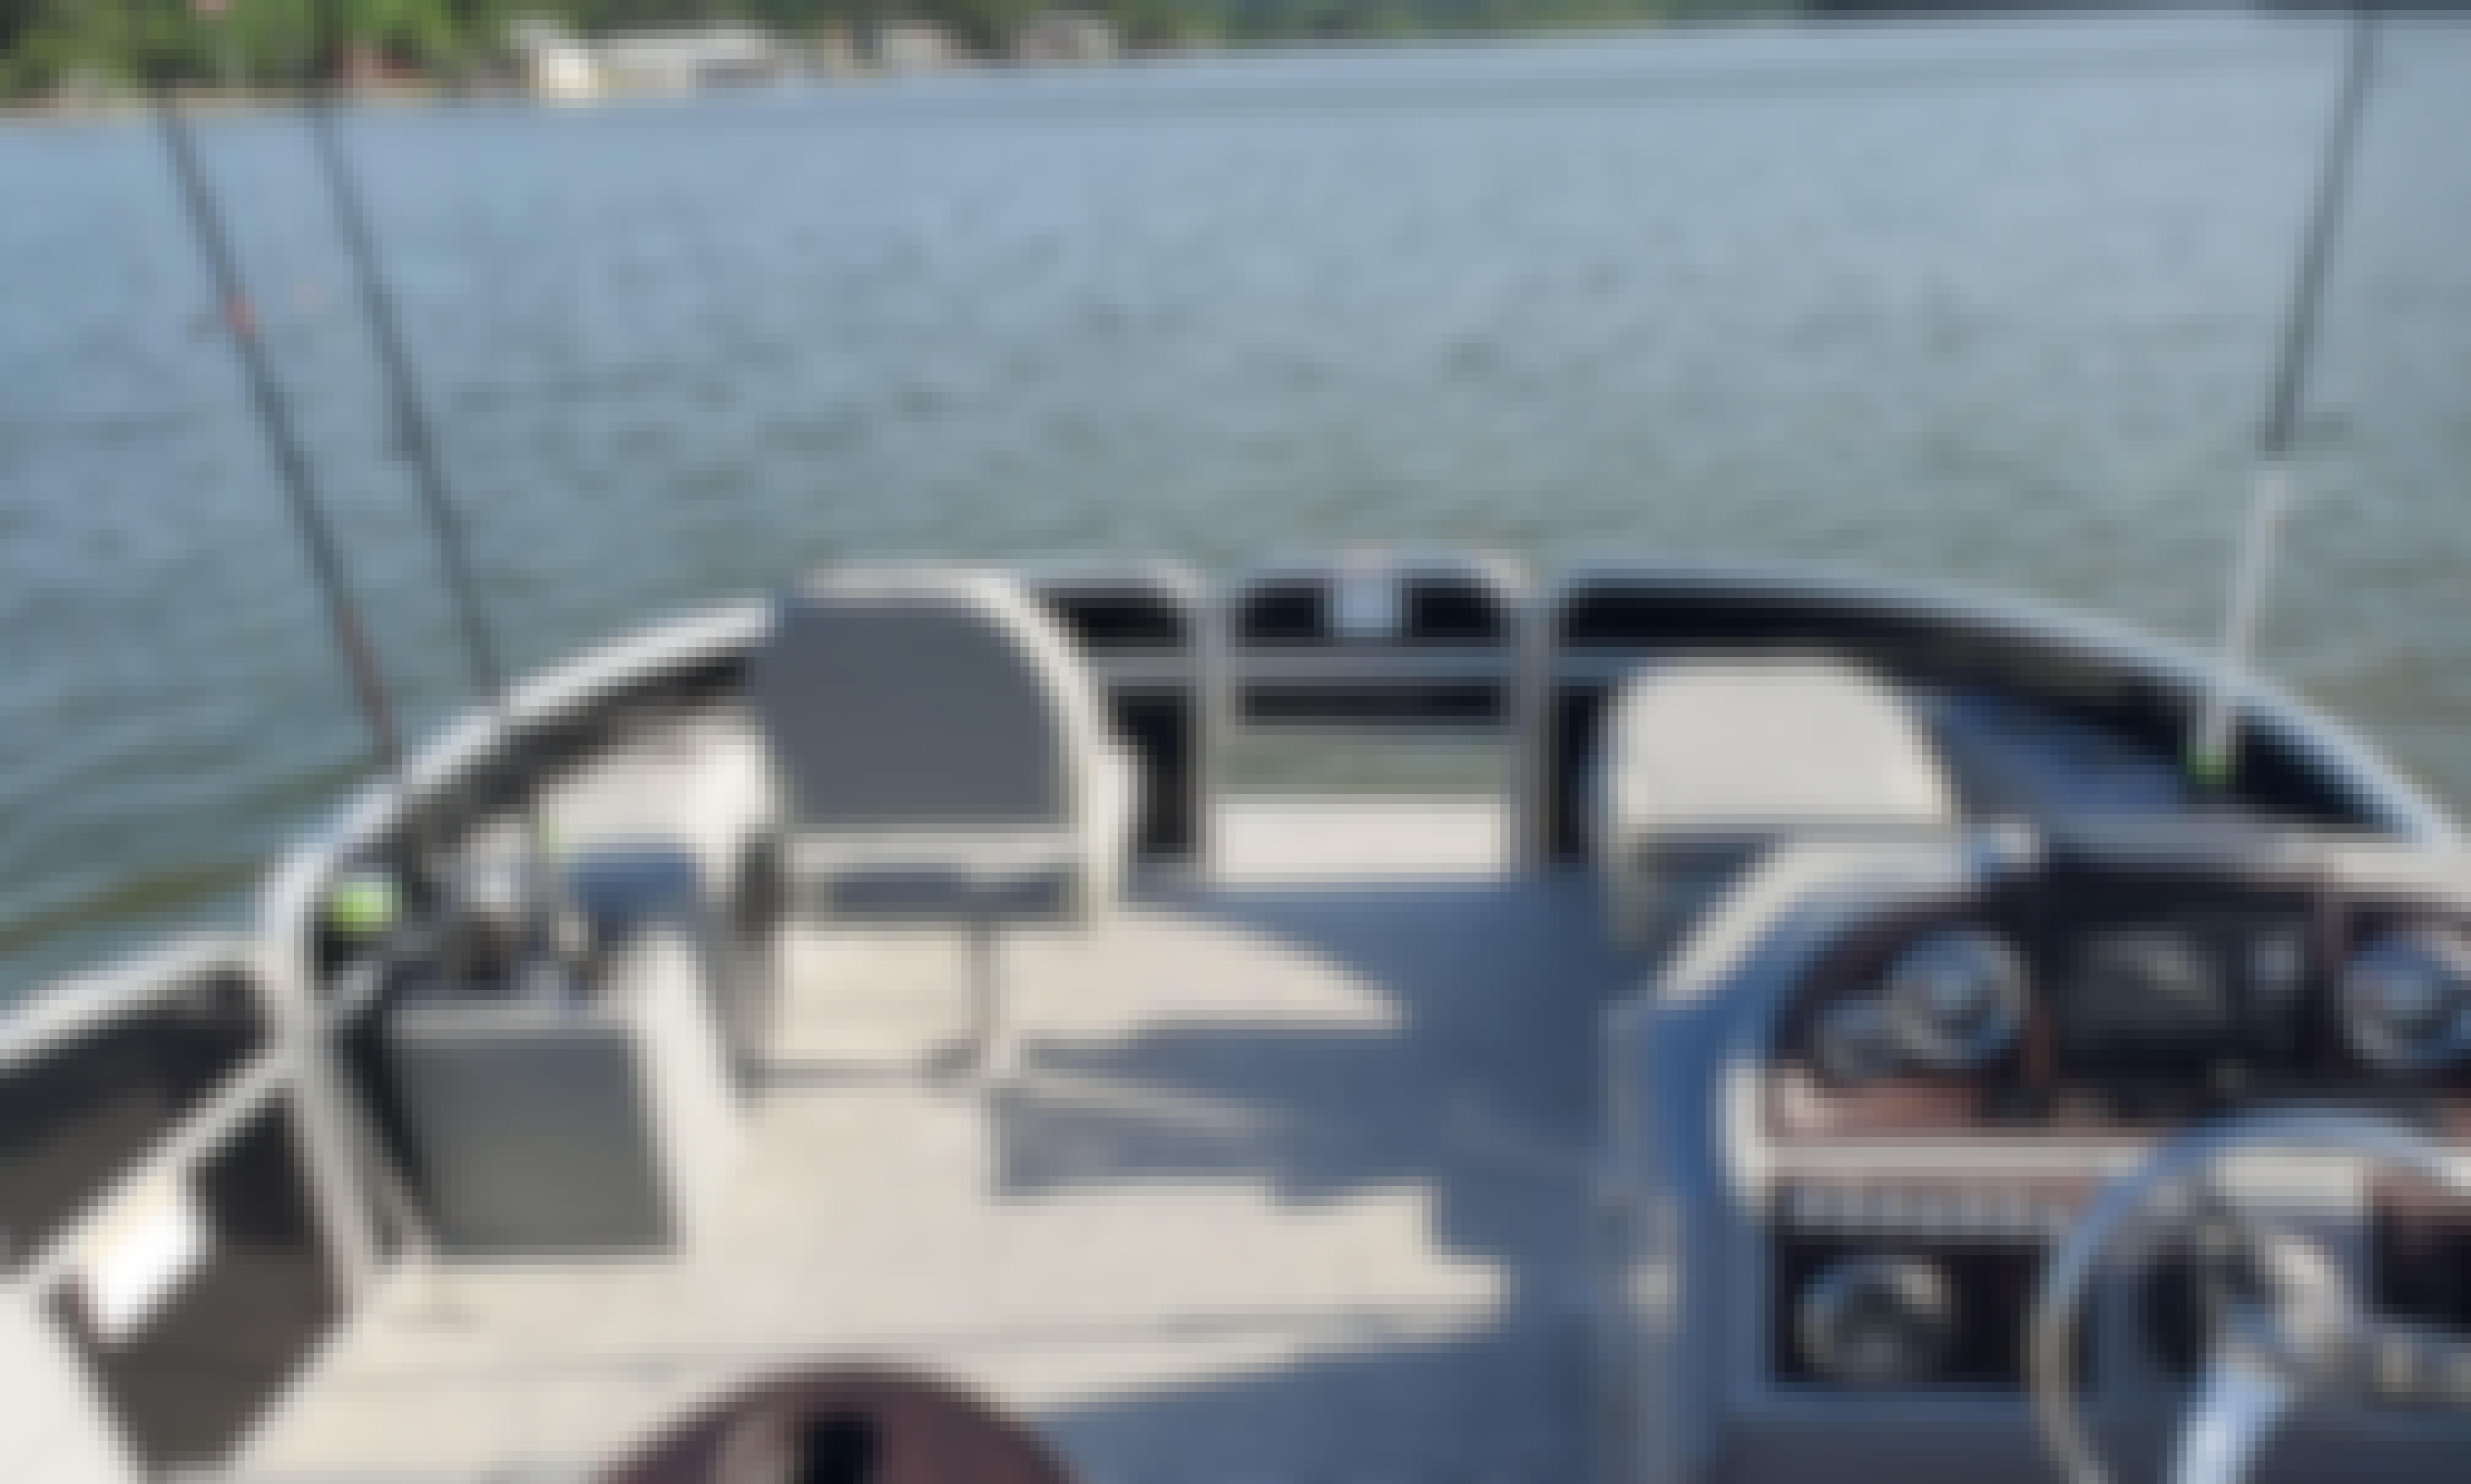 New Bershire Pontoon Boat 2021 for Rent!